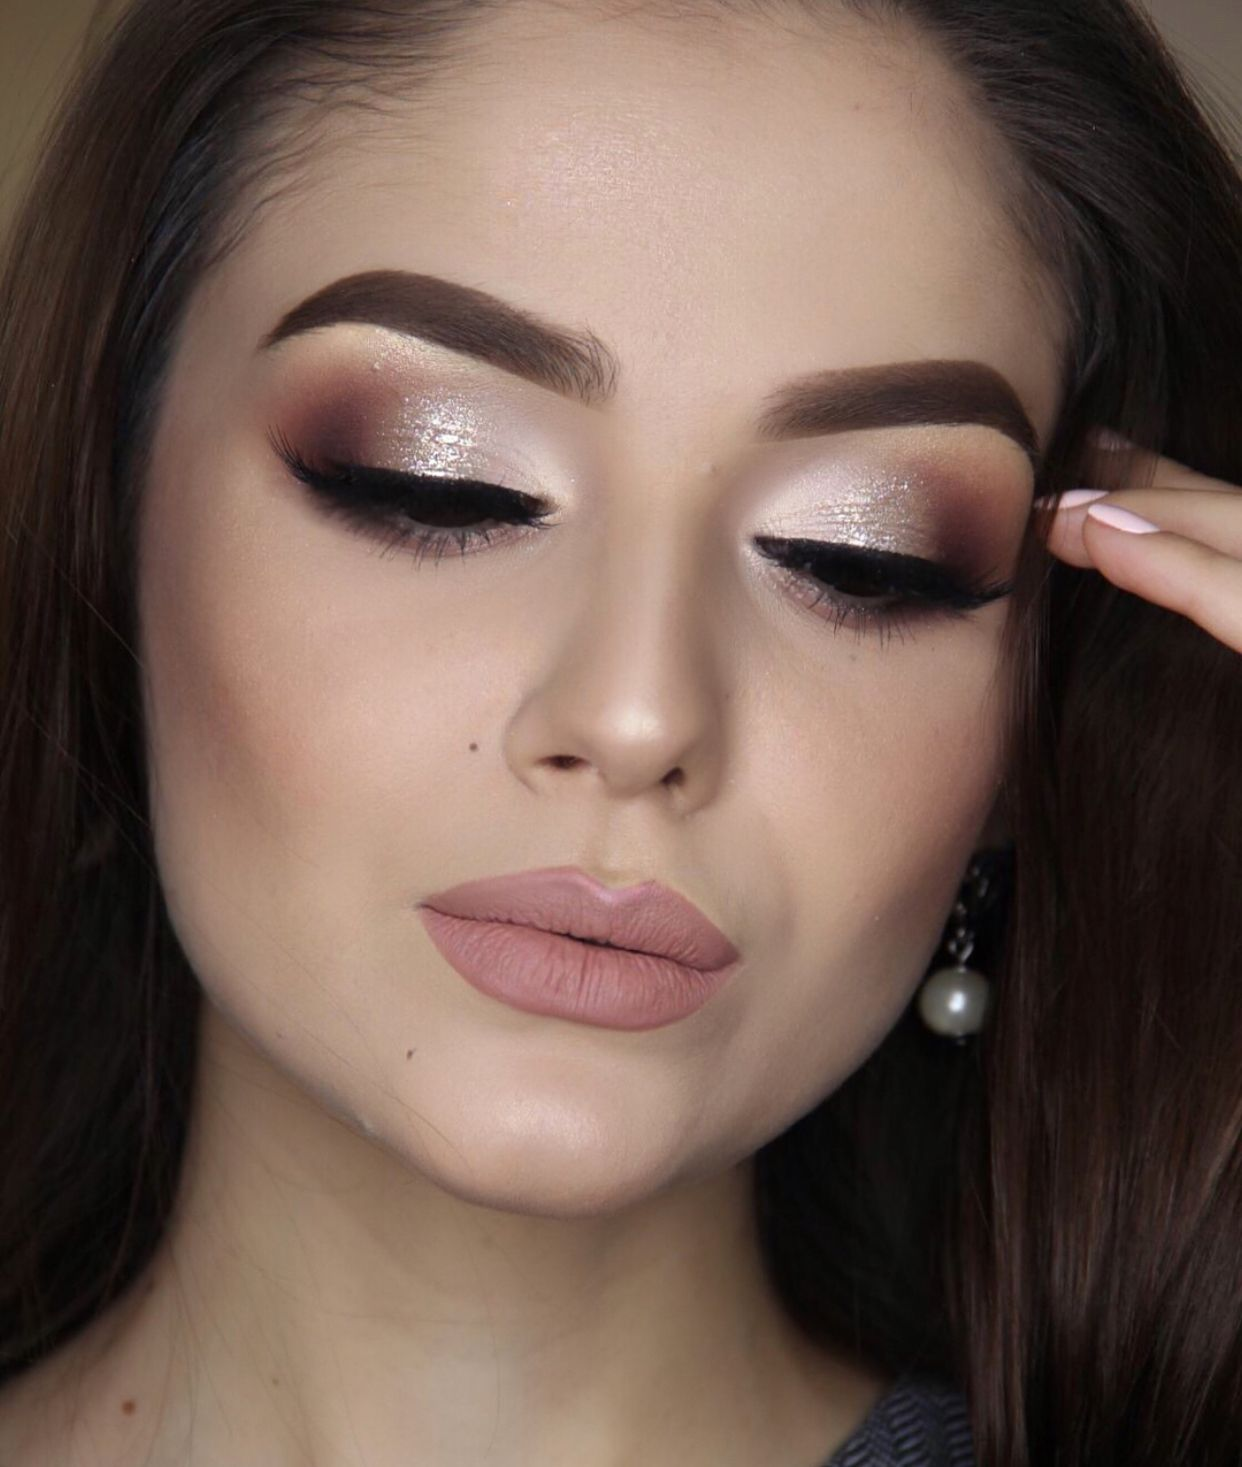 Pin by Isela Rocha on Makeup | Makeup for small eyes ...